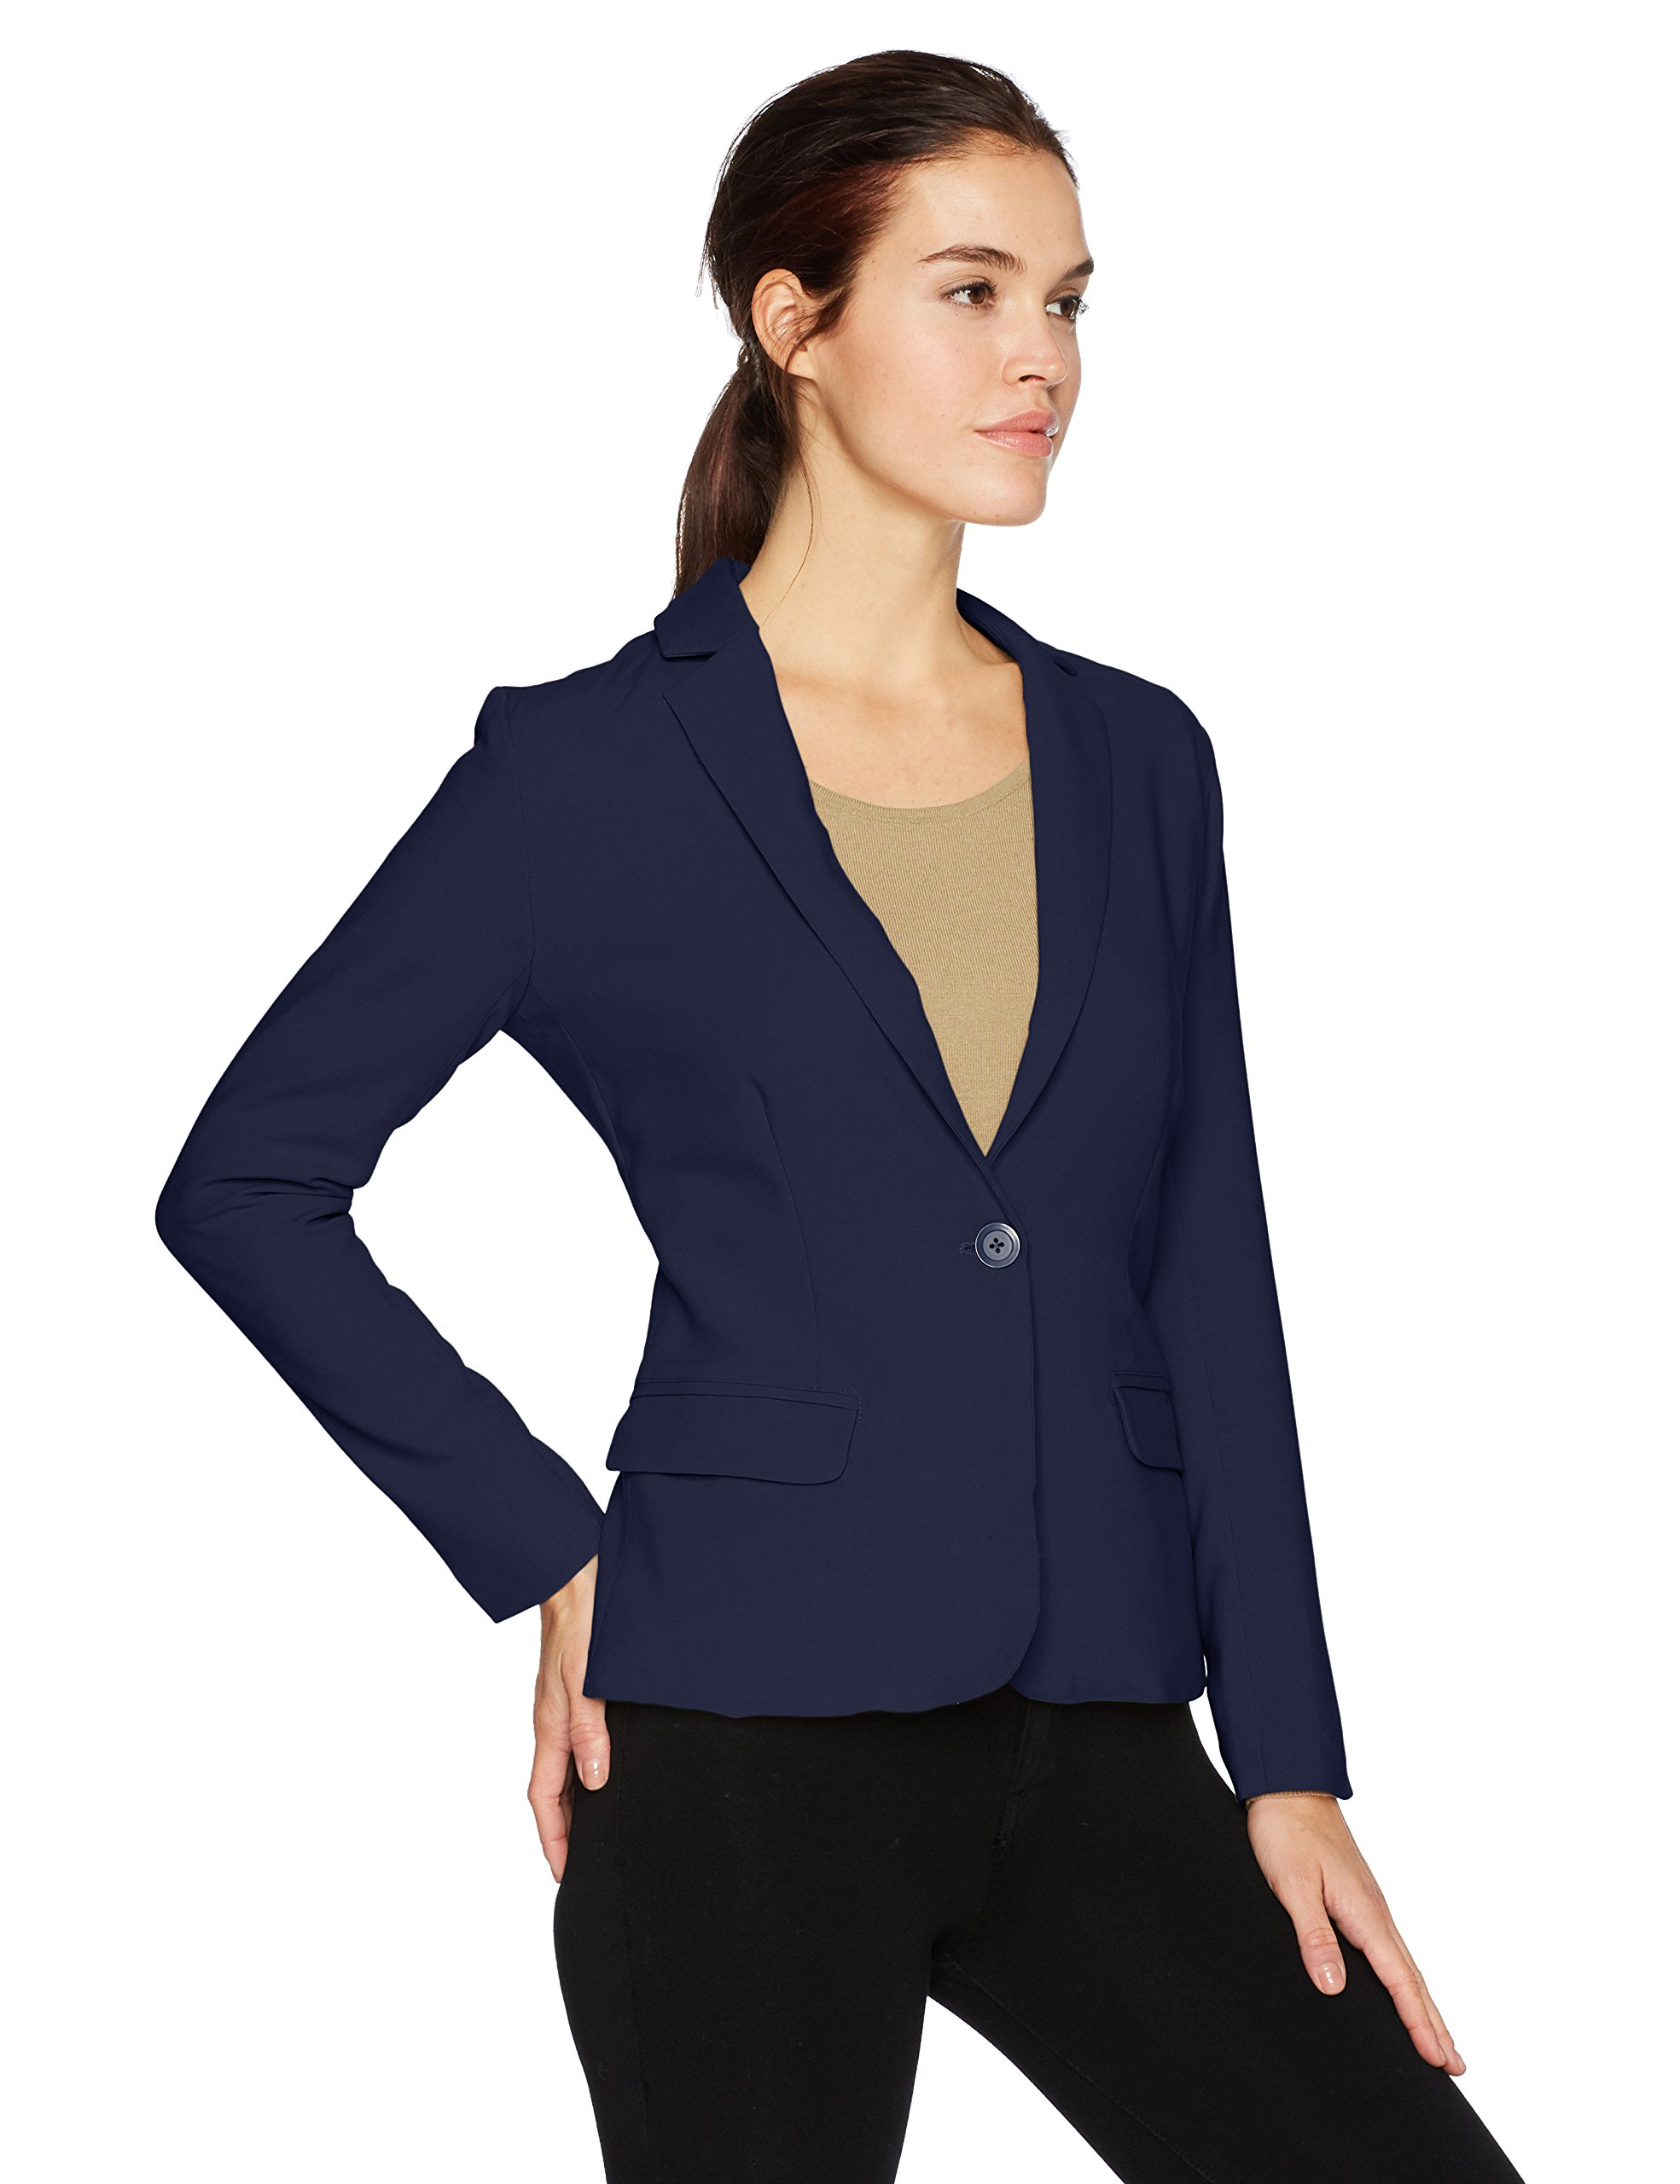 cupcakes and cashmere Women's Corvin Fitted Blazer with Striped Lining, Ink, 8